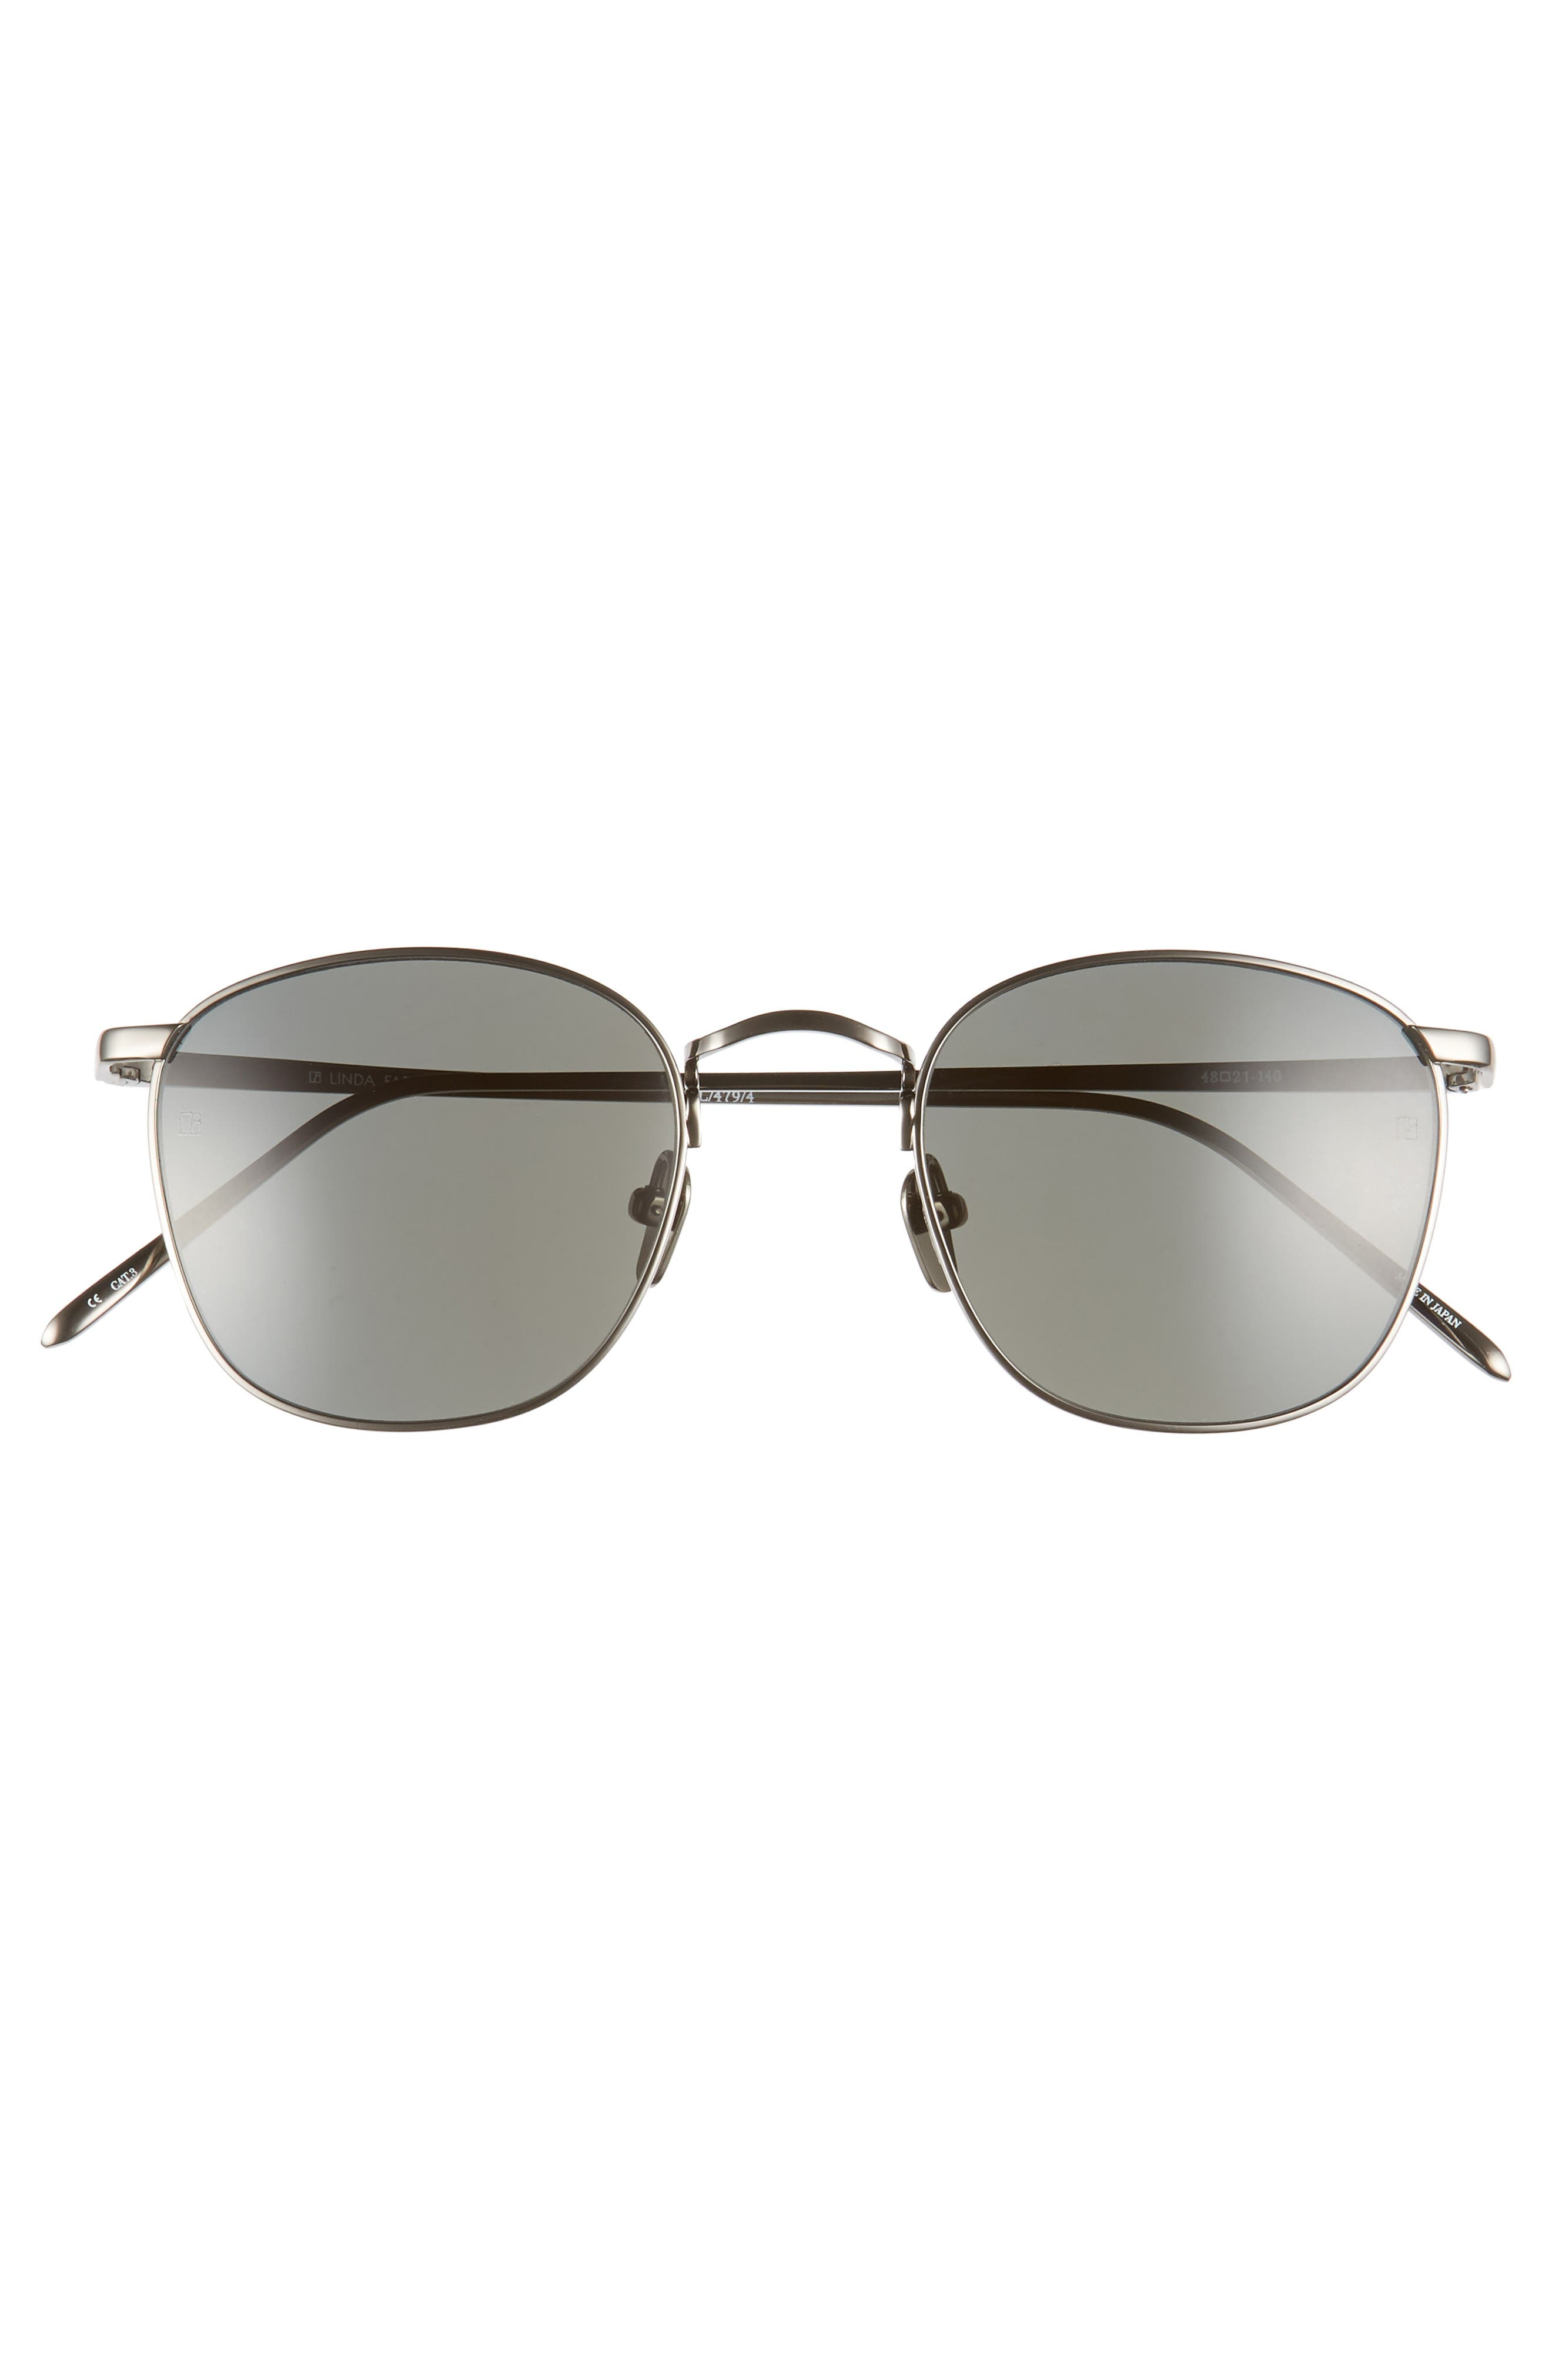 48mm Square Sunglasses,                             Alternate thumbnail 3, color,                             DARK NICKEL